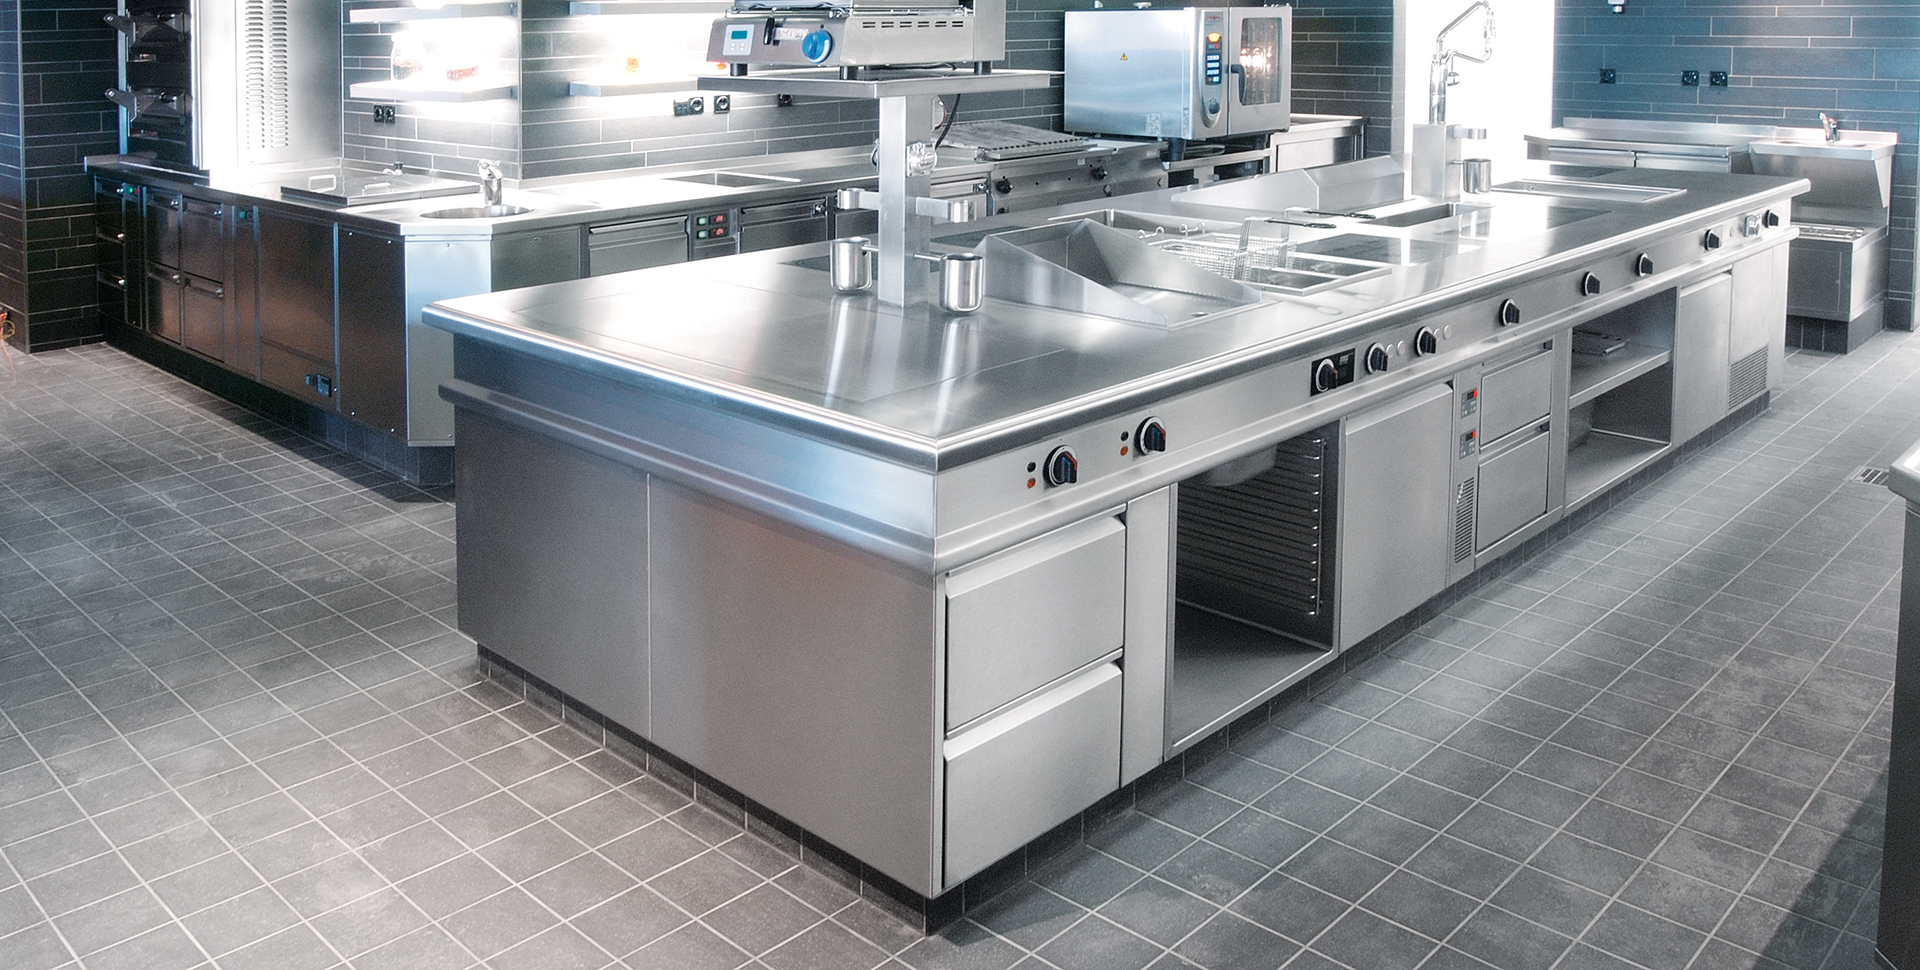 Küche Gebraucht Kaufen Gießen Professional Induction Cooking Suites For Restaurants And